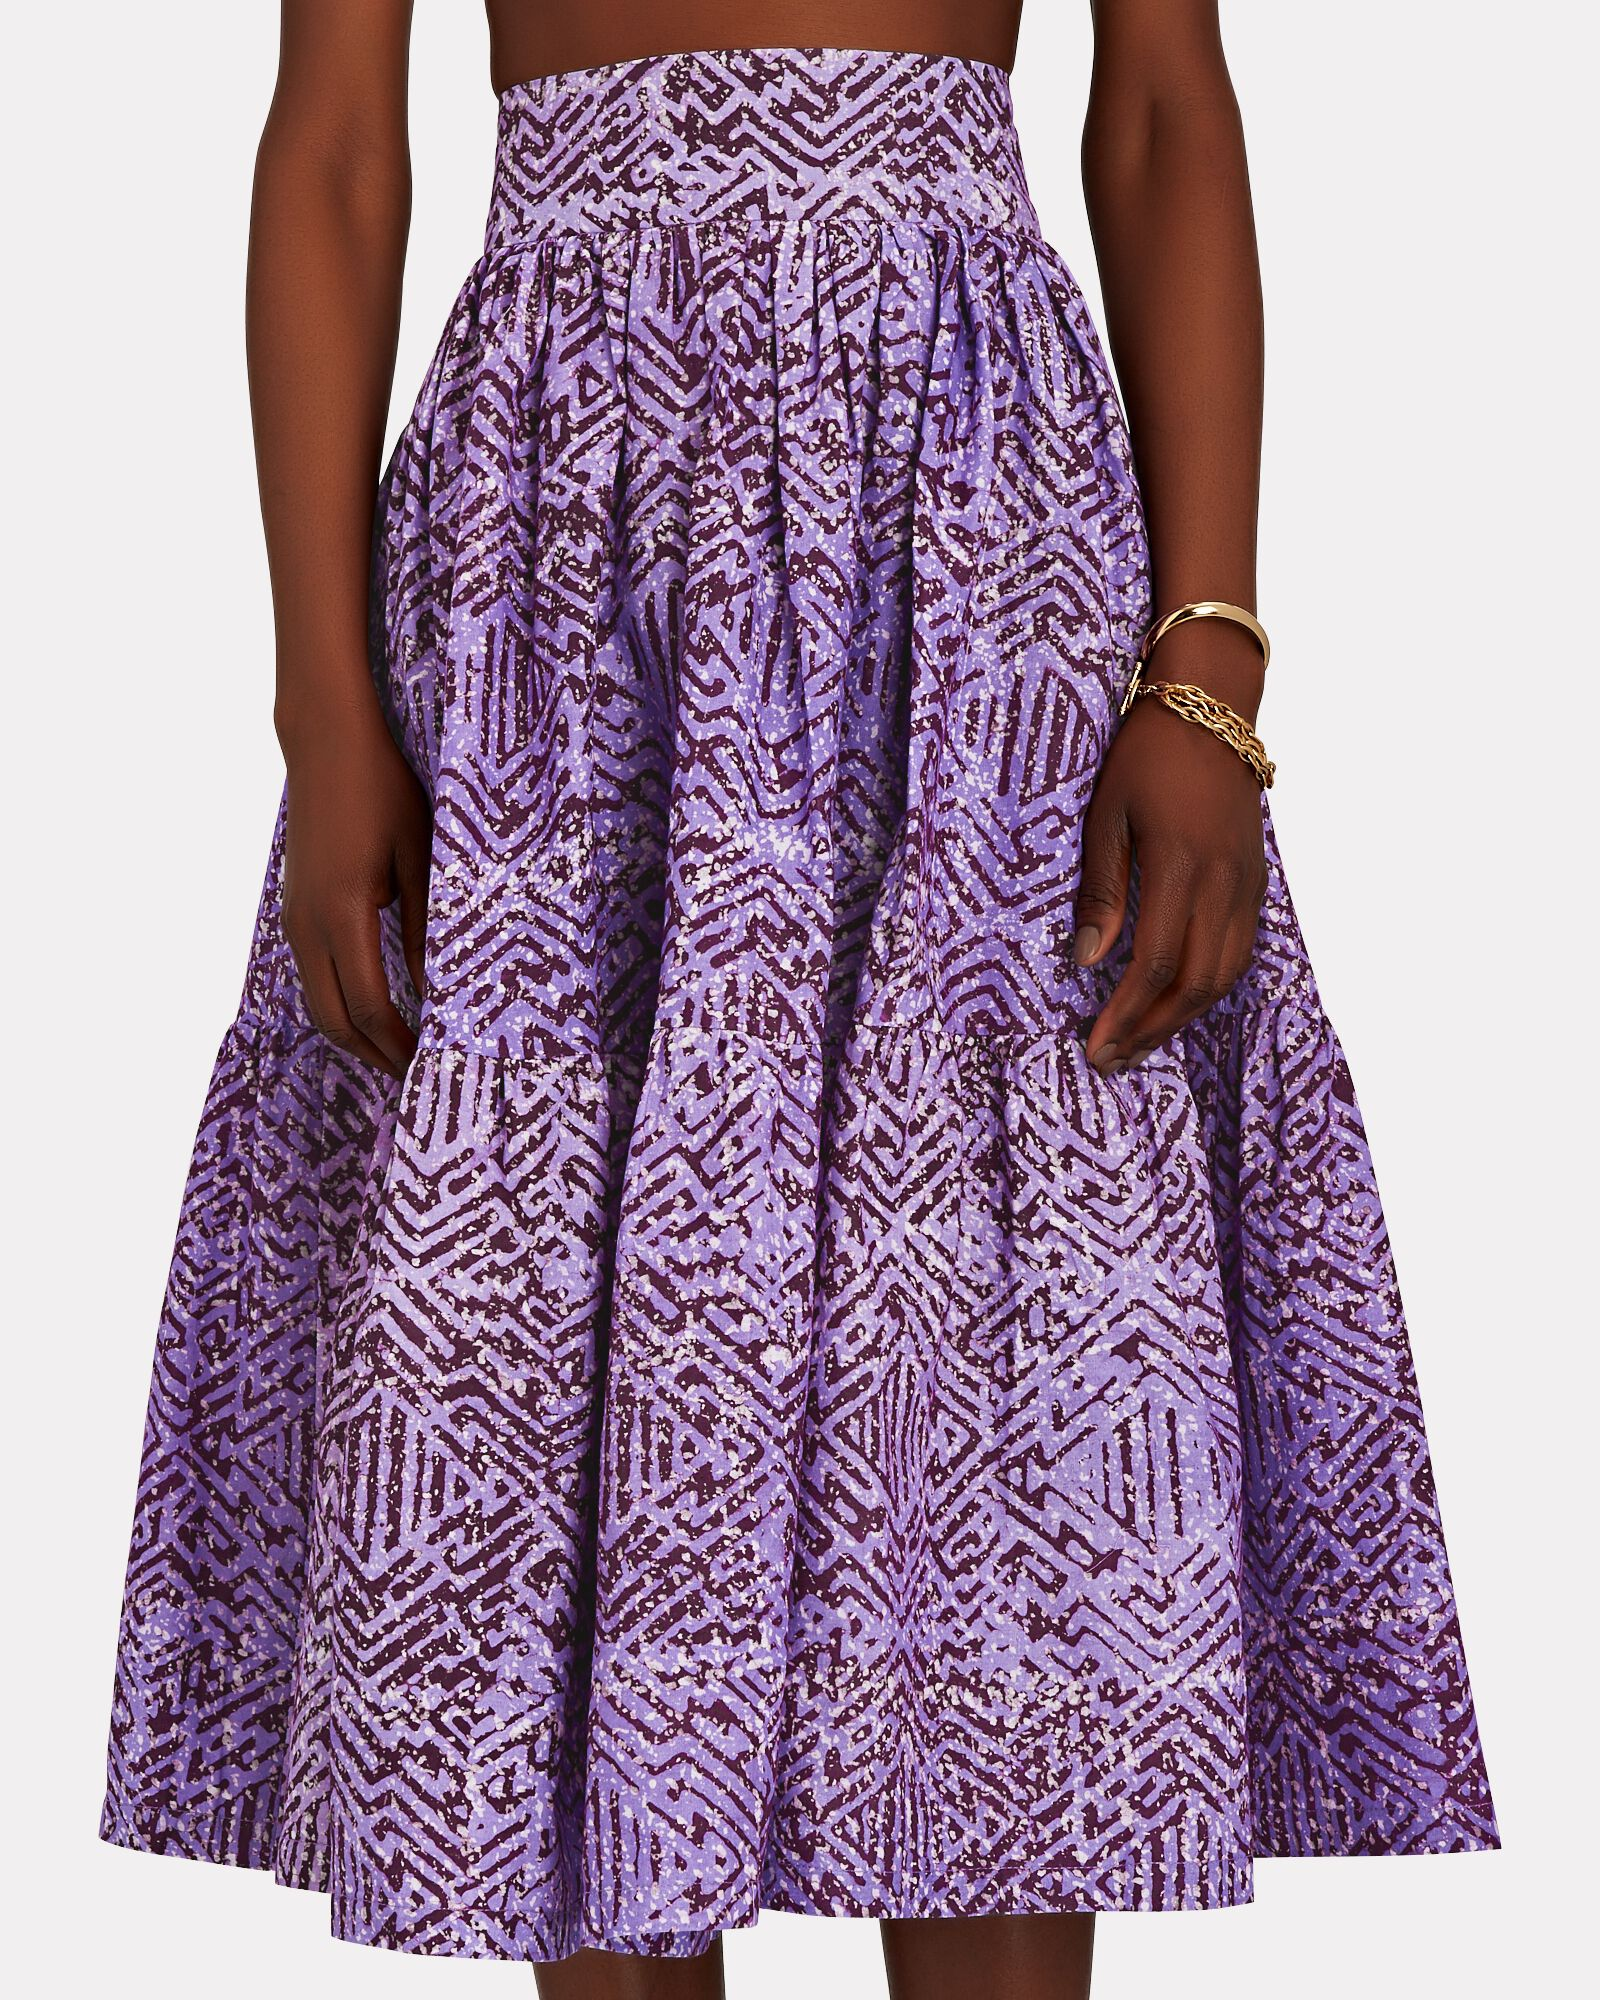 Rosette Tiered Printed Cotton Skirt, MULTI, hi-res